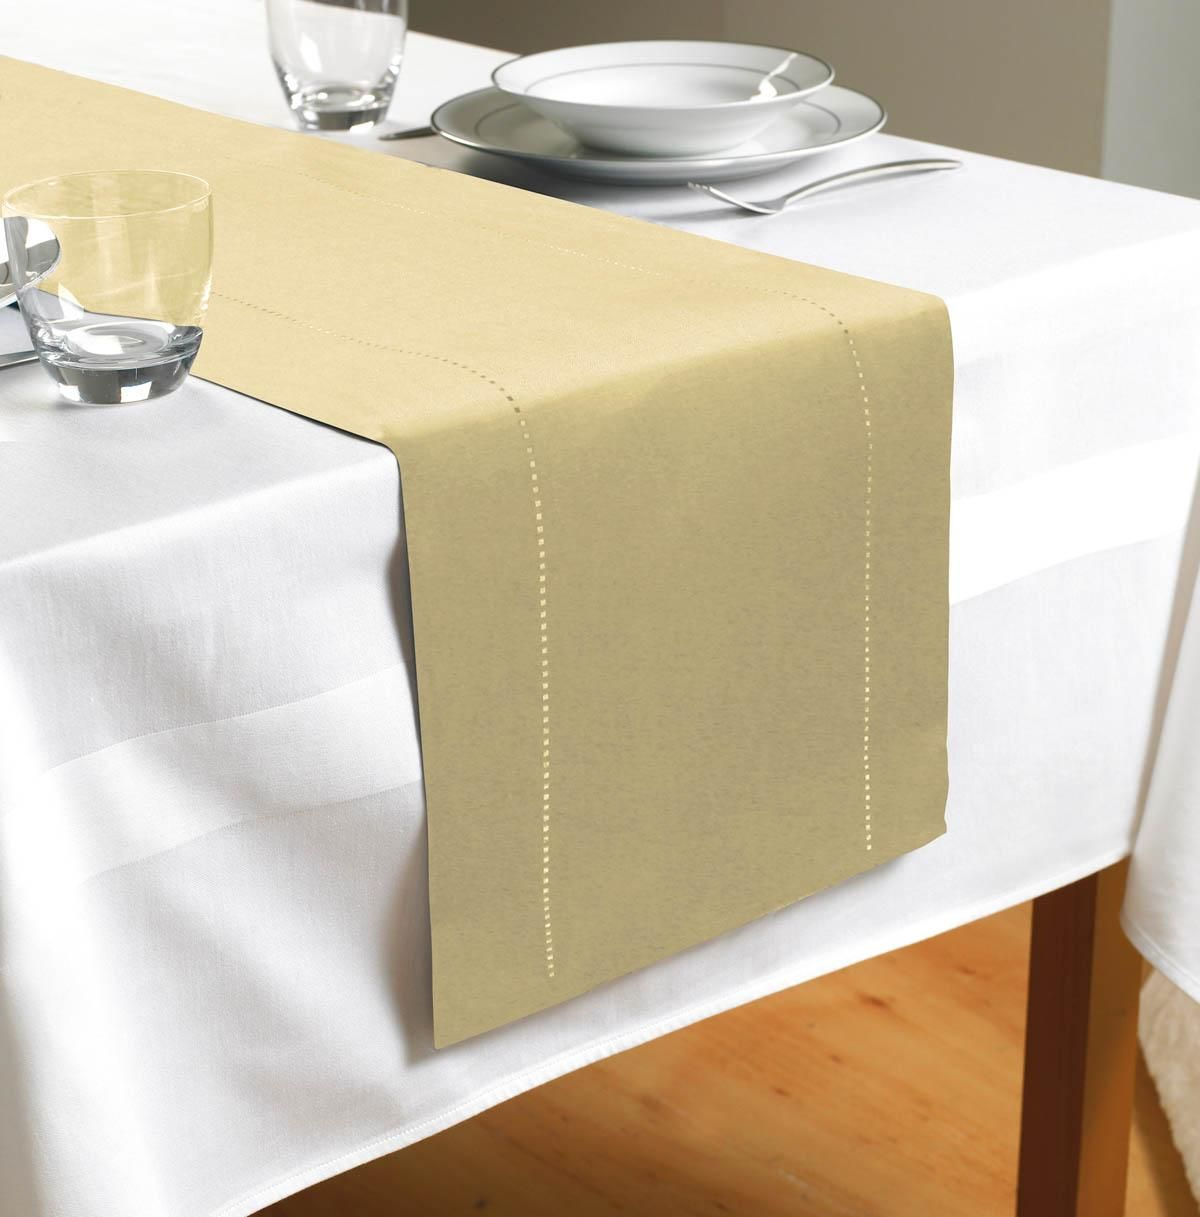 Table Linen  Windowtechsin  Pinterest  Silk Fabric Window And Classy Table Runners For Dining Room Table Decorating Design